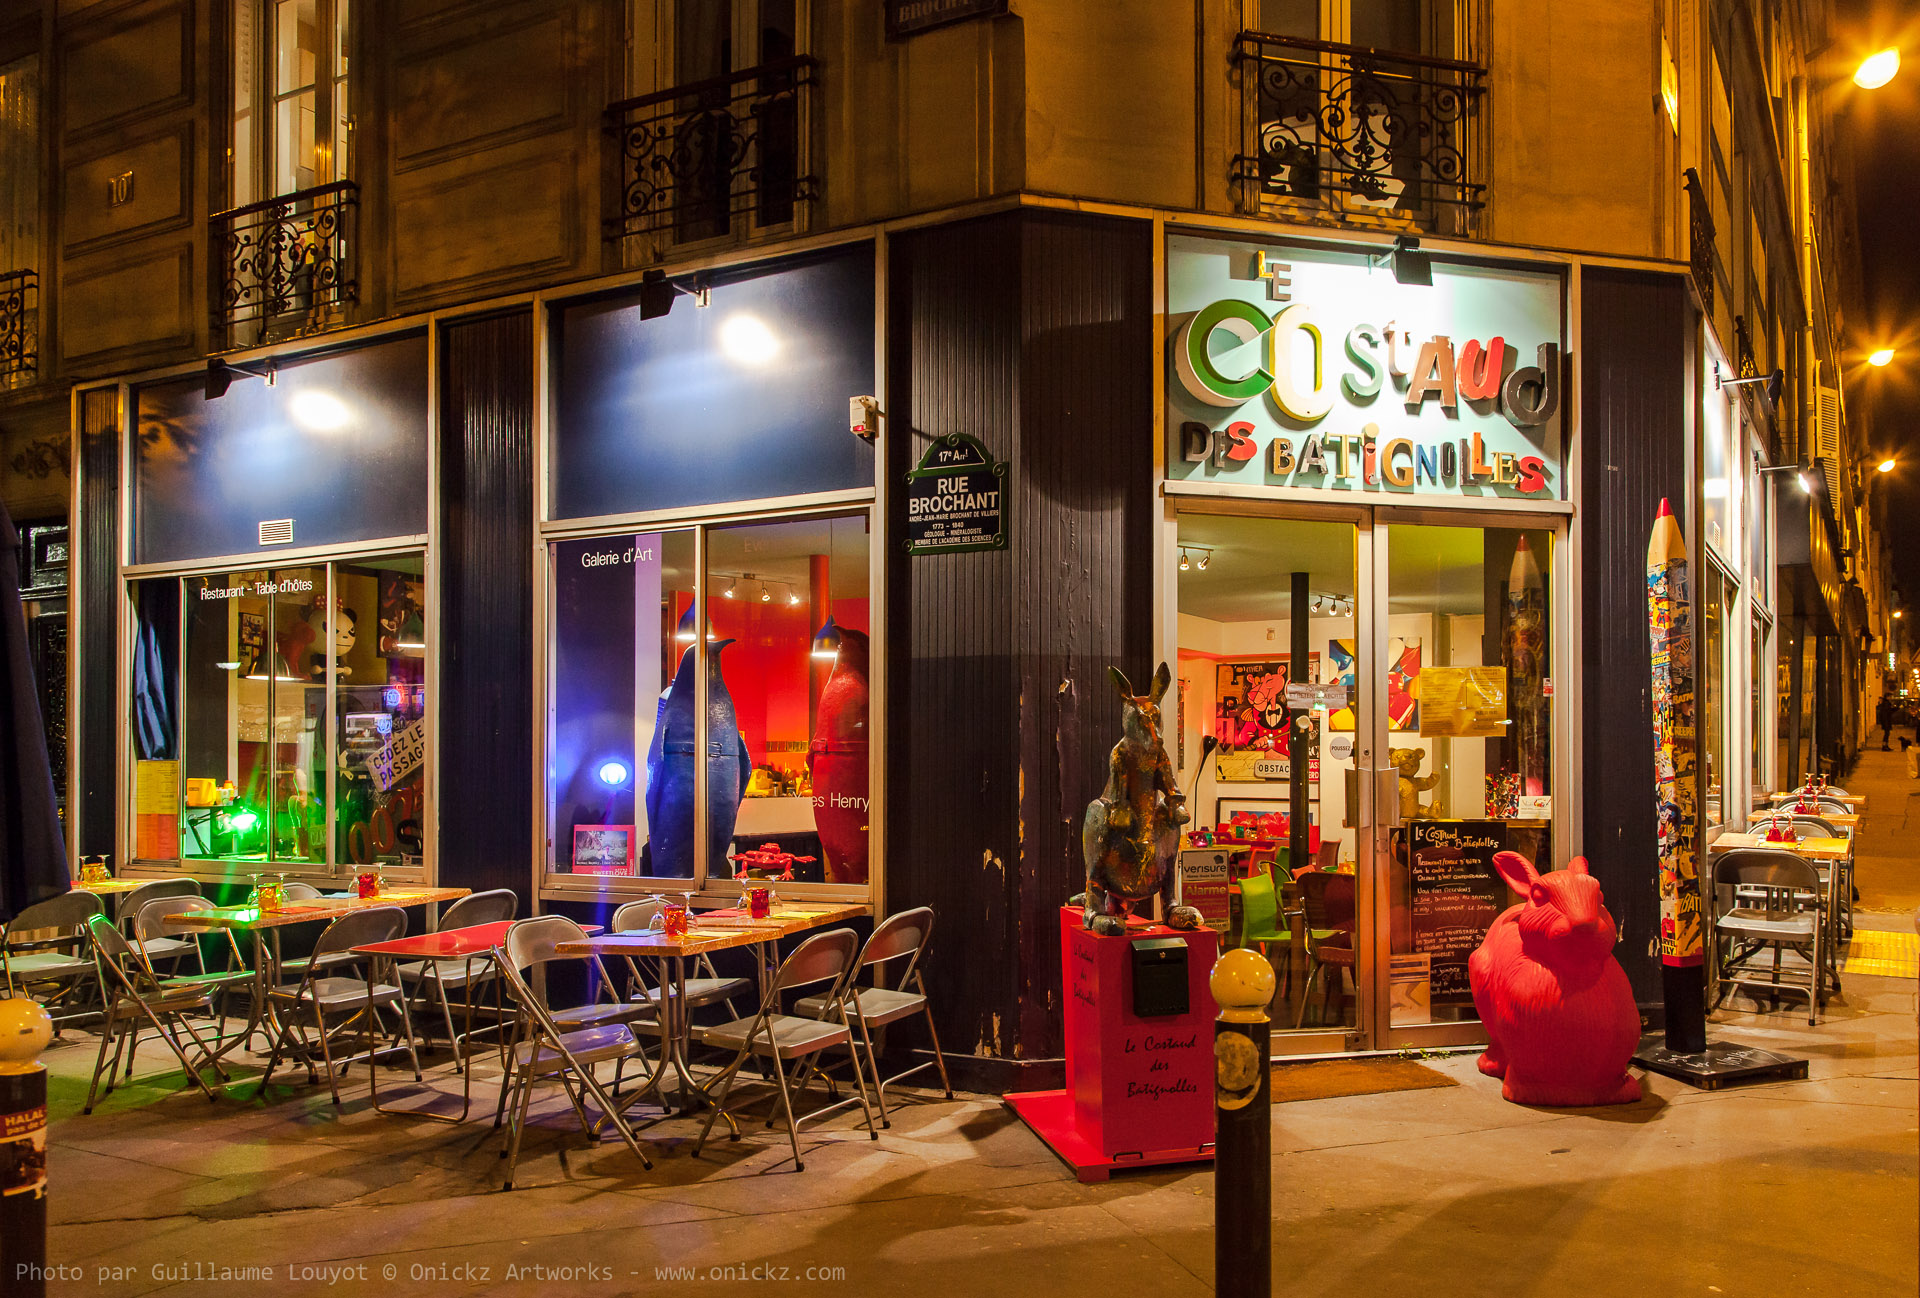 Le Costaud des Batignolles - Photo pour Google par Guillaume Louyot - Onickz Artworks - MonCommerce.Net